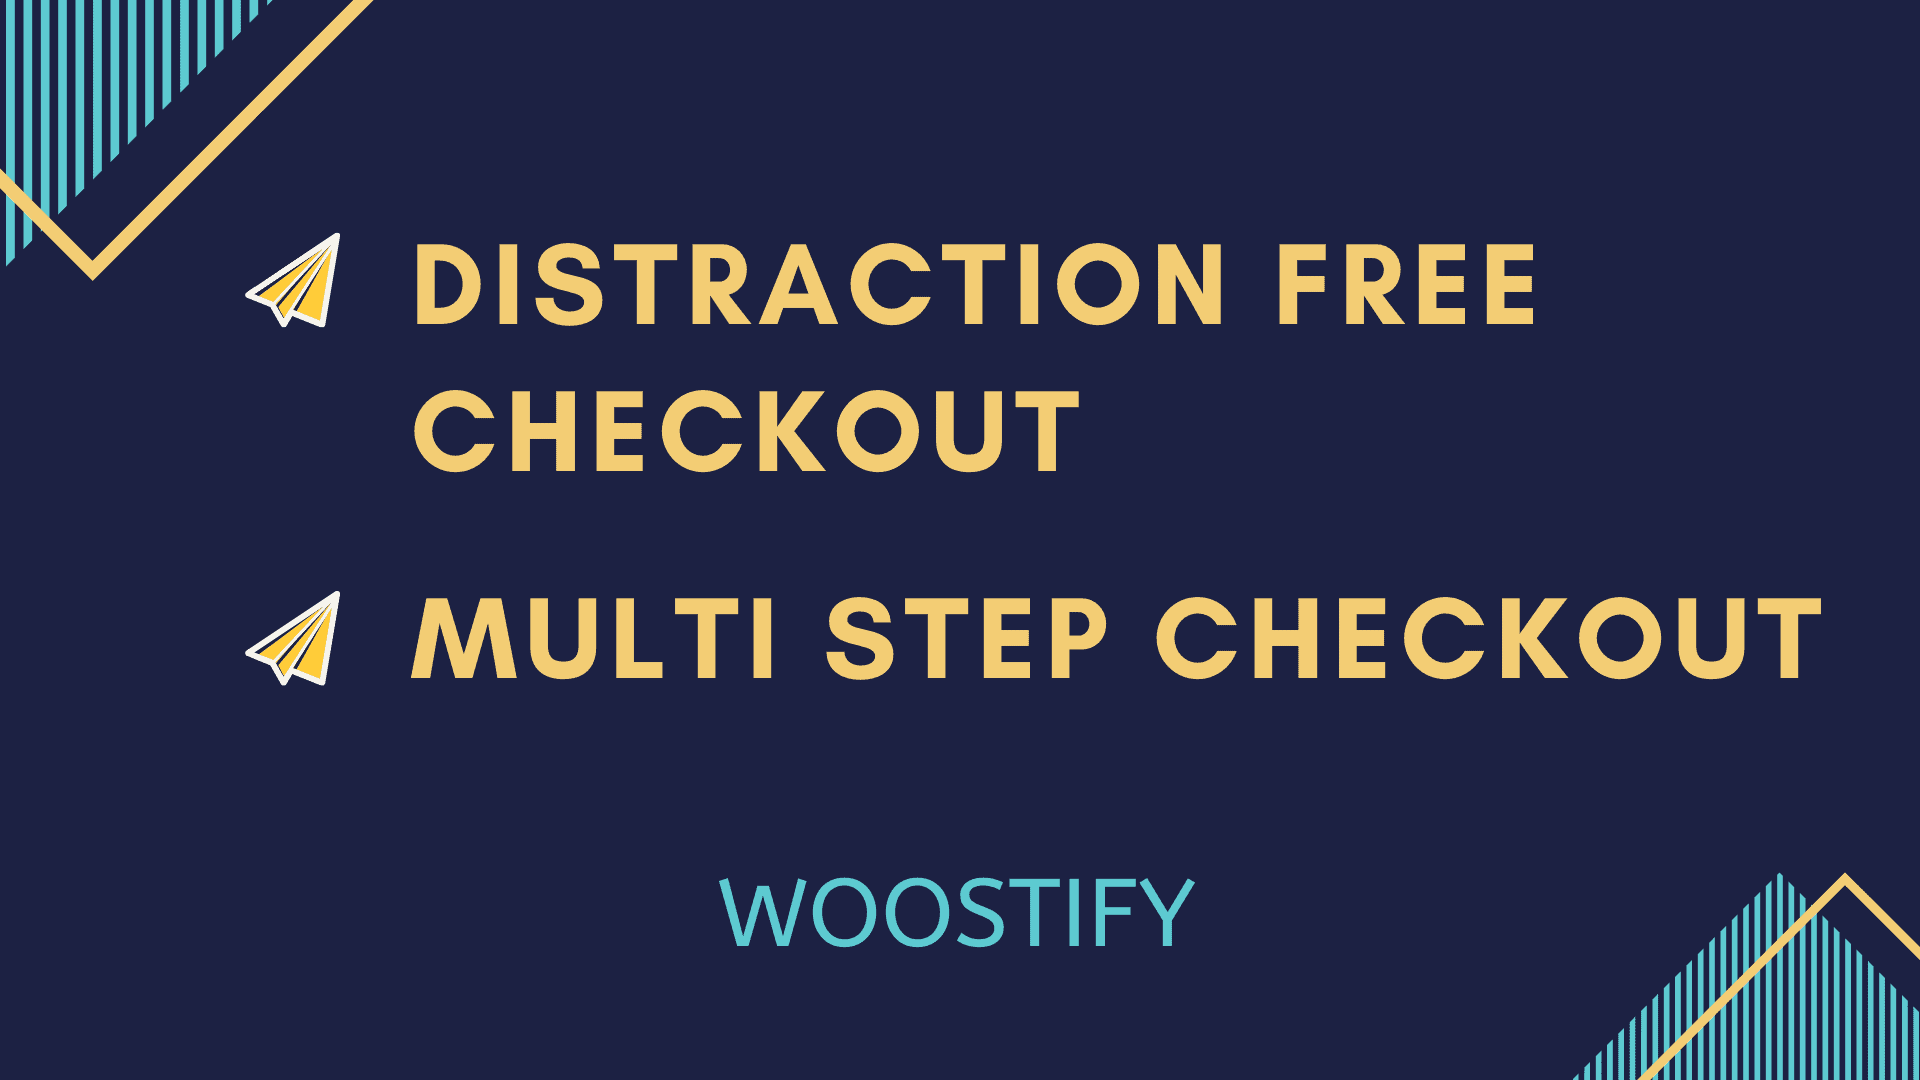 Distraction Free Checkout- Multi Step Checkout